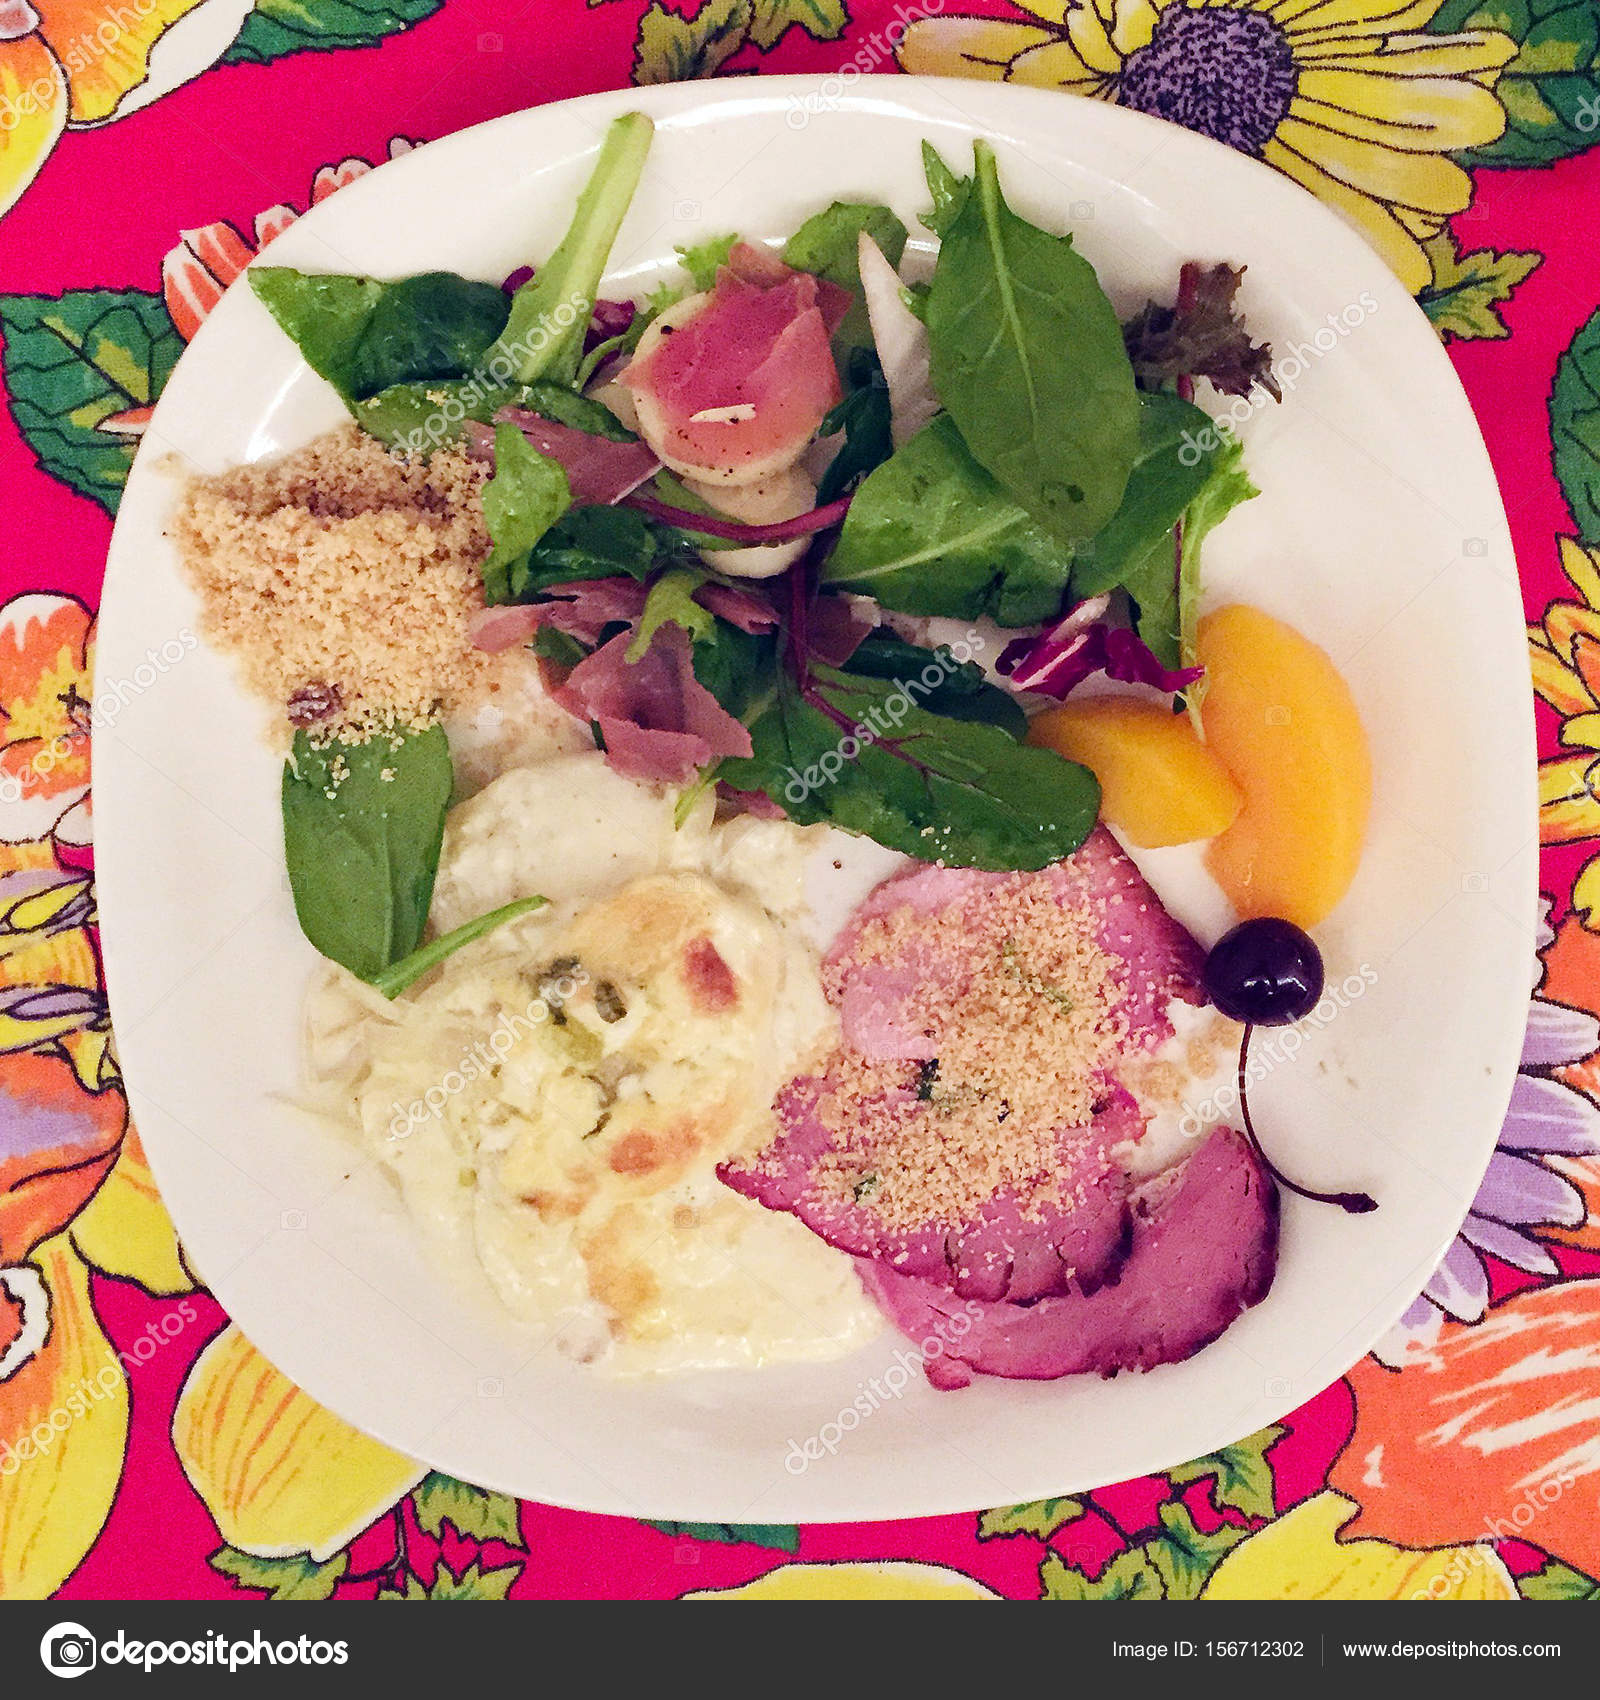 Brazilian Christmas dinner plate with ham and salad on colorful tablecloth u2014 Photo by cabecademarmore  sc 1 st  Depositphotos & Brazilian Christmas dinner plate u2014 Stock Photo © cabecademarmore ...